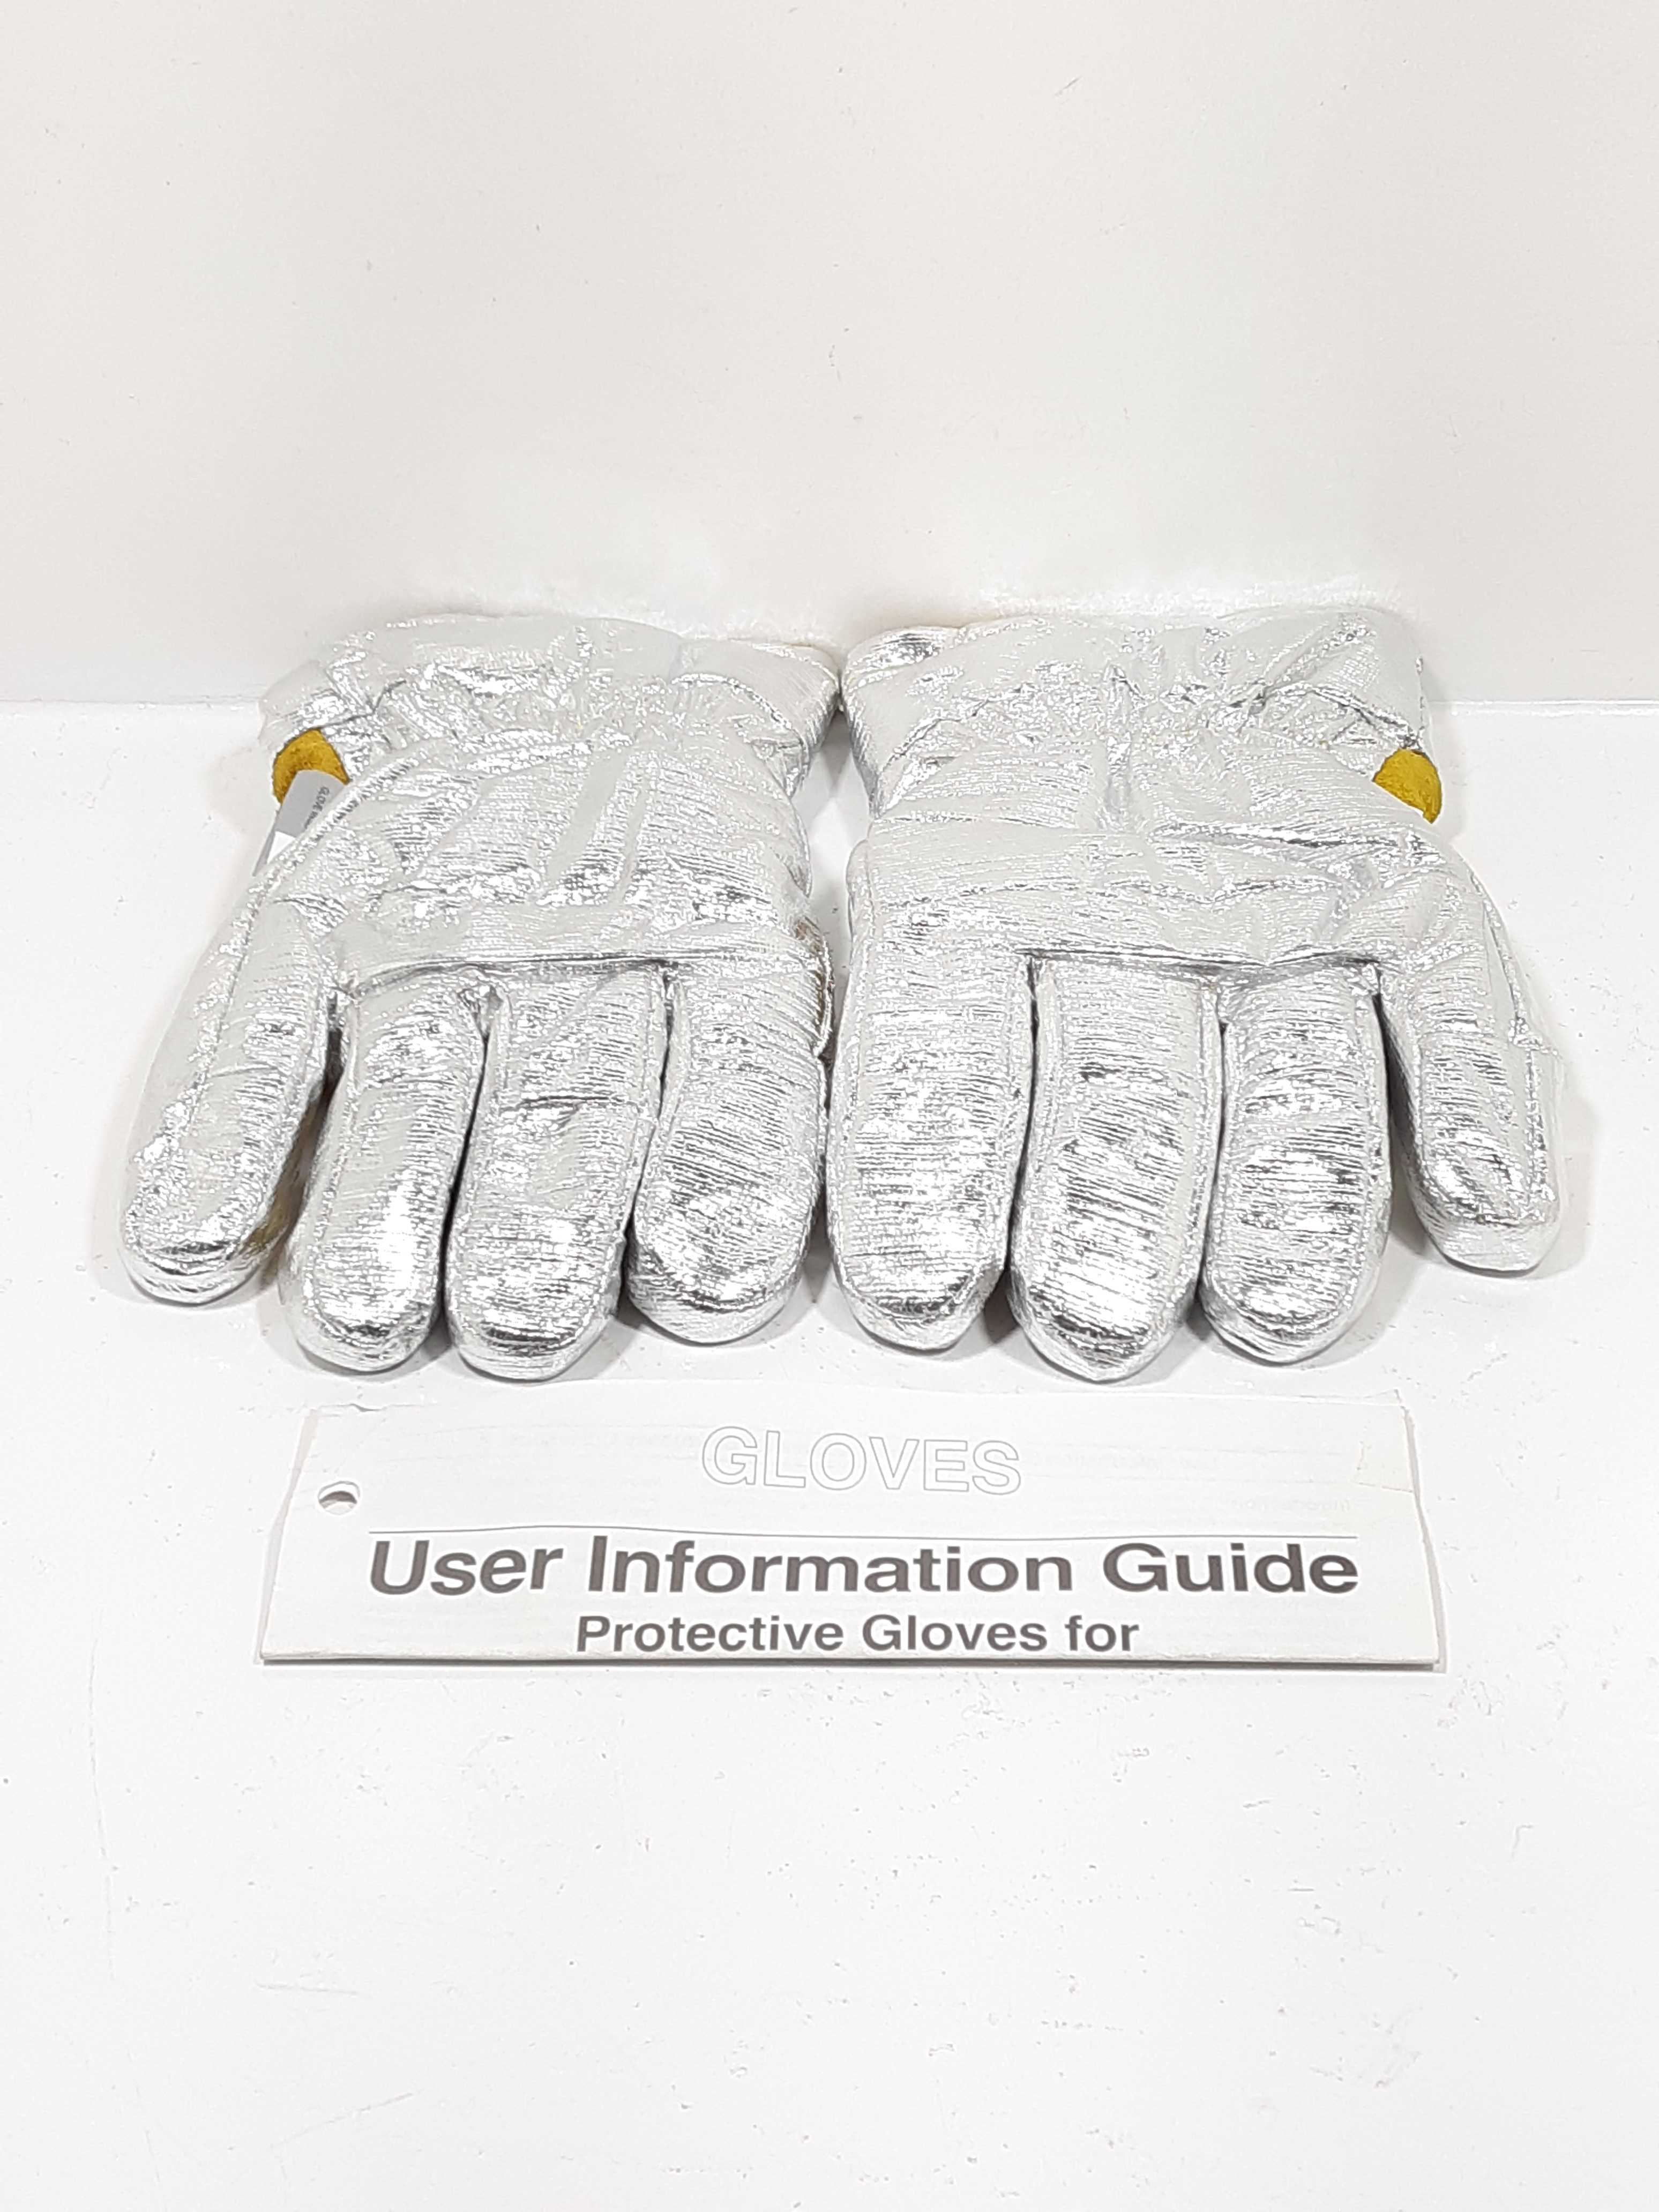 American Firewear GL-BPR-RGA-3X Aluminized Proximity Firefighting Gloves 3X